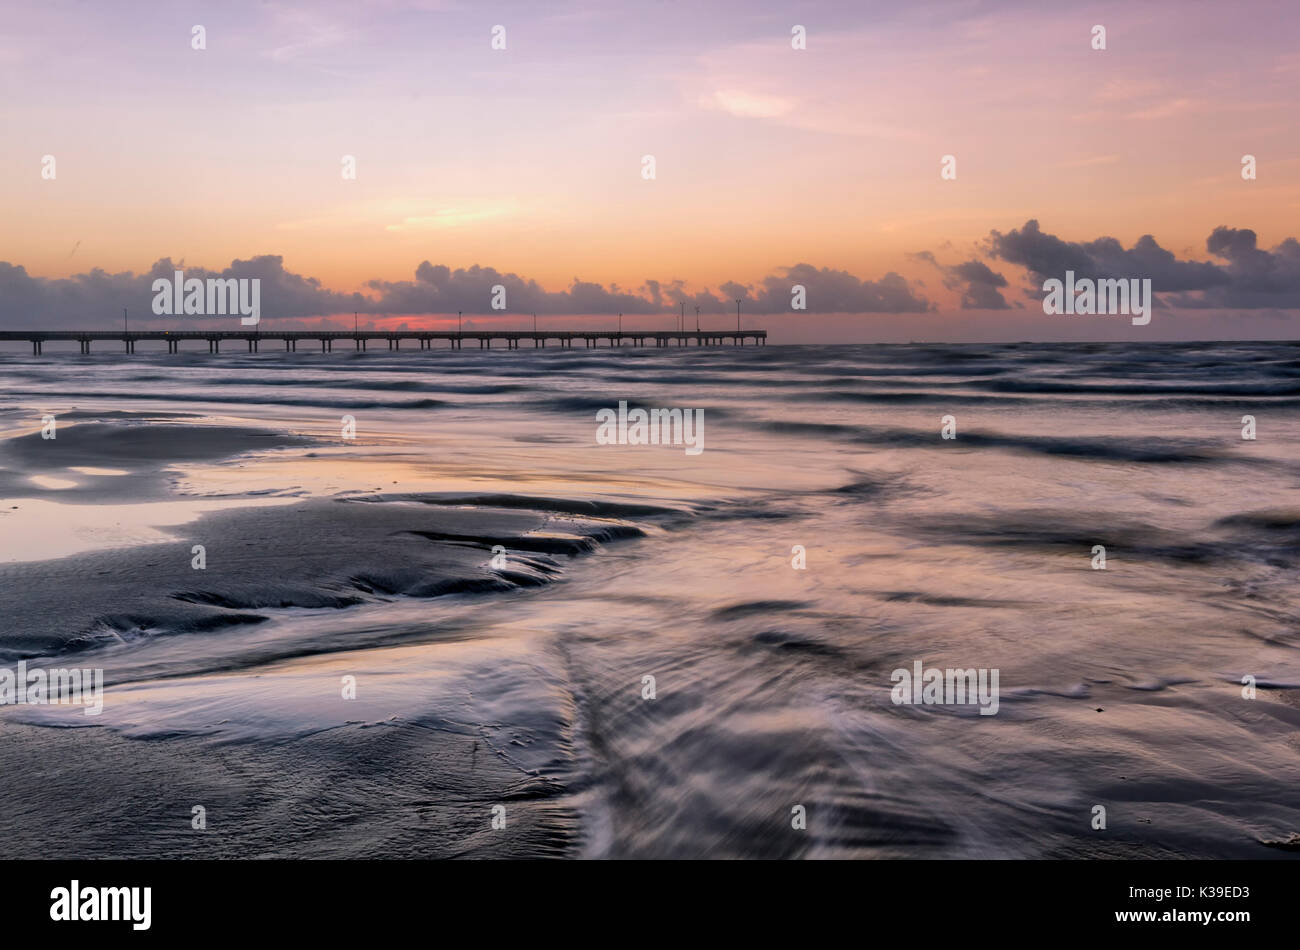 Horace Caldwell Fishing pier at sunrise with a long exposure on the crashing waves in the foreground located on Mustang Island in Port Aransas Texas - Stock Image